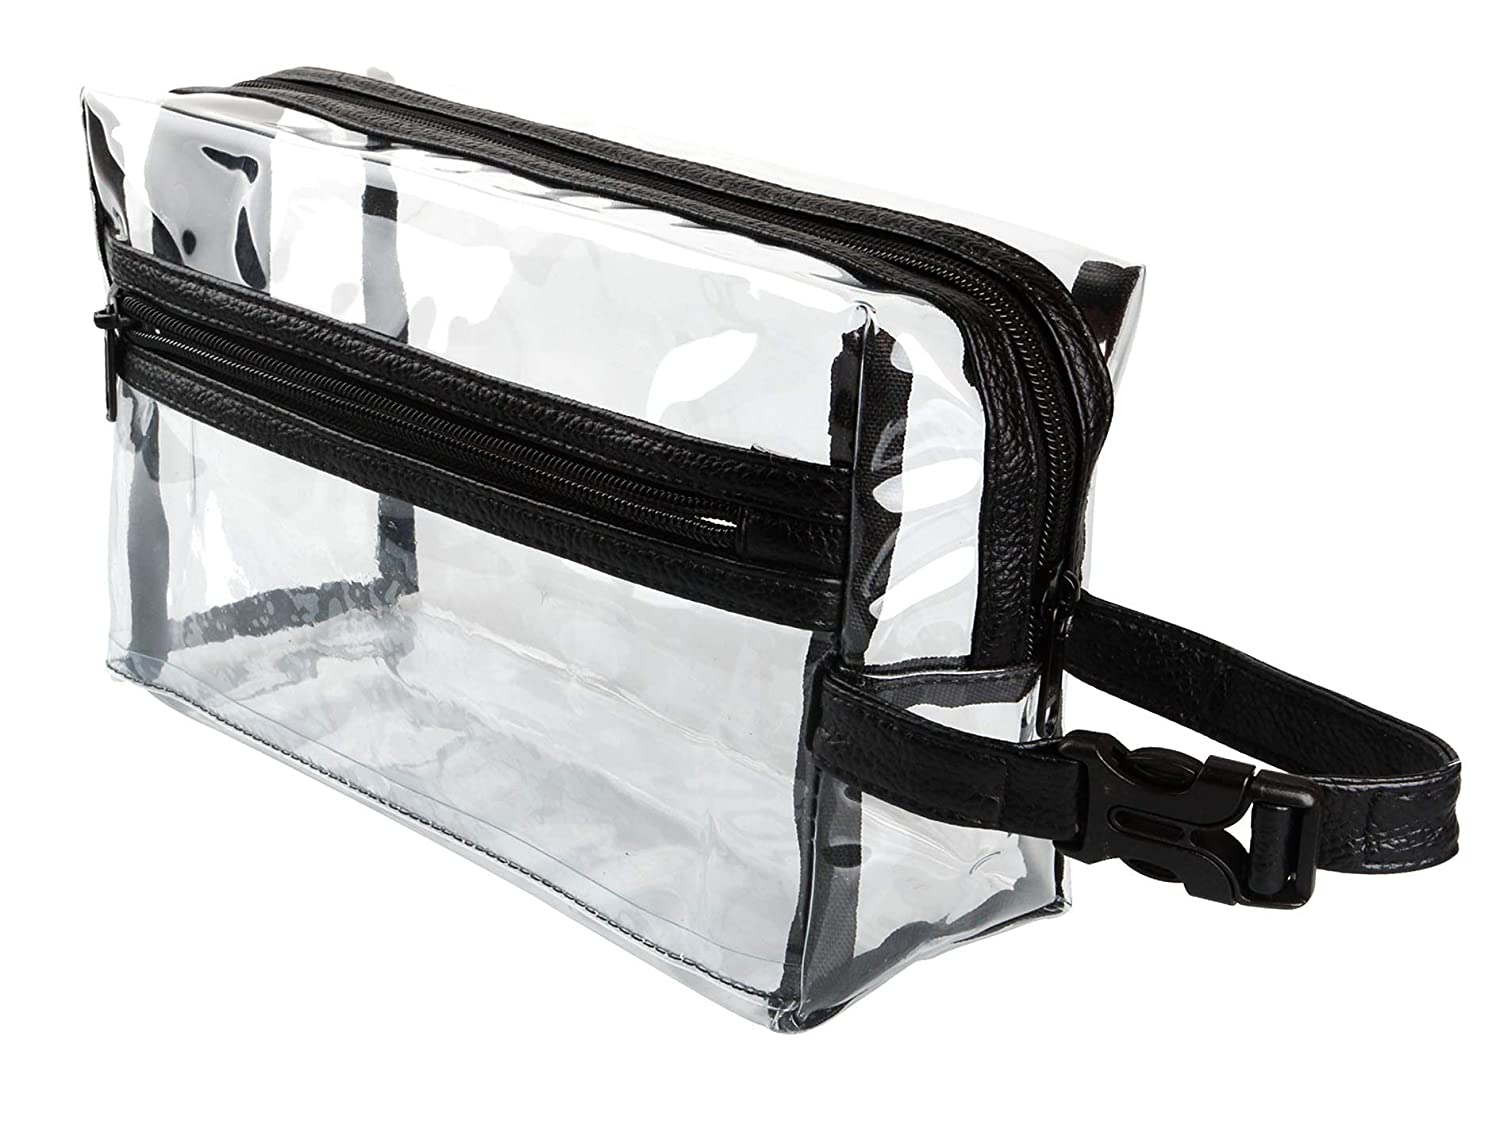 Heavy Duty Clear Toiletry Makeup Bags Transparent Shaving Bag Water Resistant Cosmetic Bag Organizer Pouch for Travel with Zipper and Handle (Black With Quick-release Buckle)